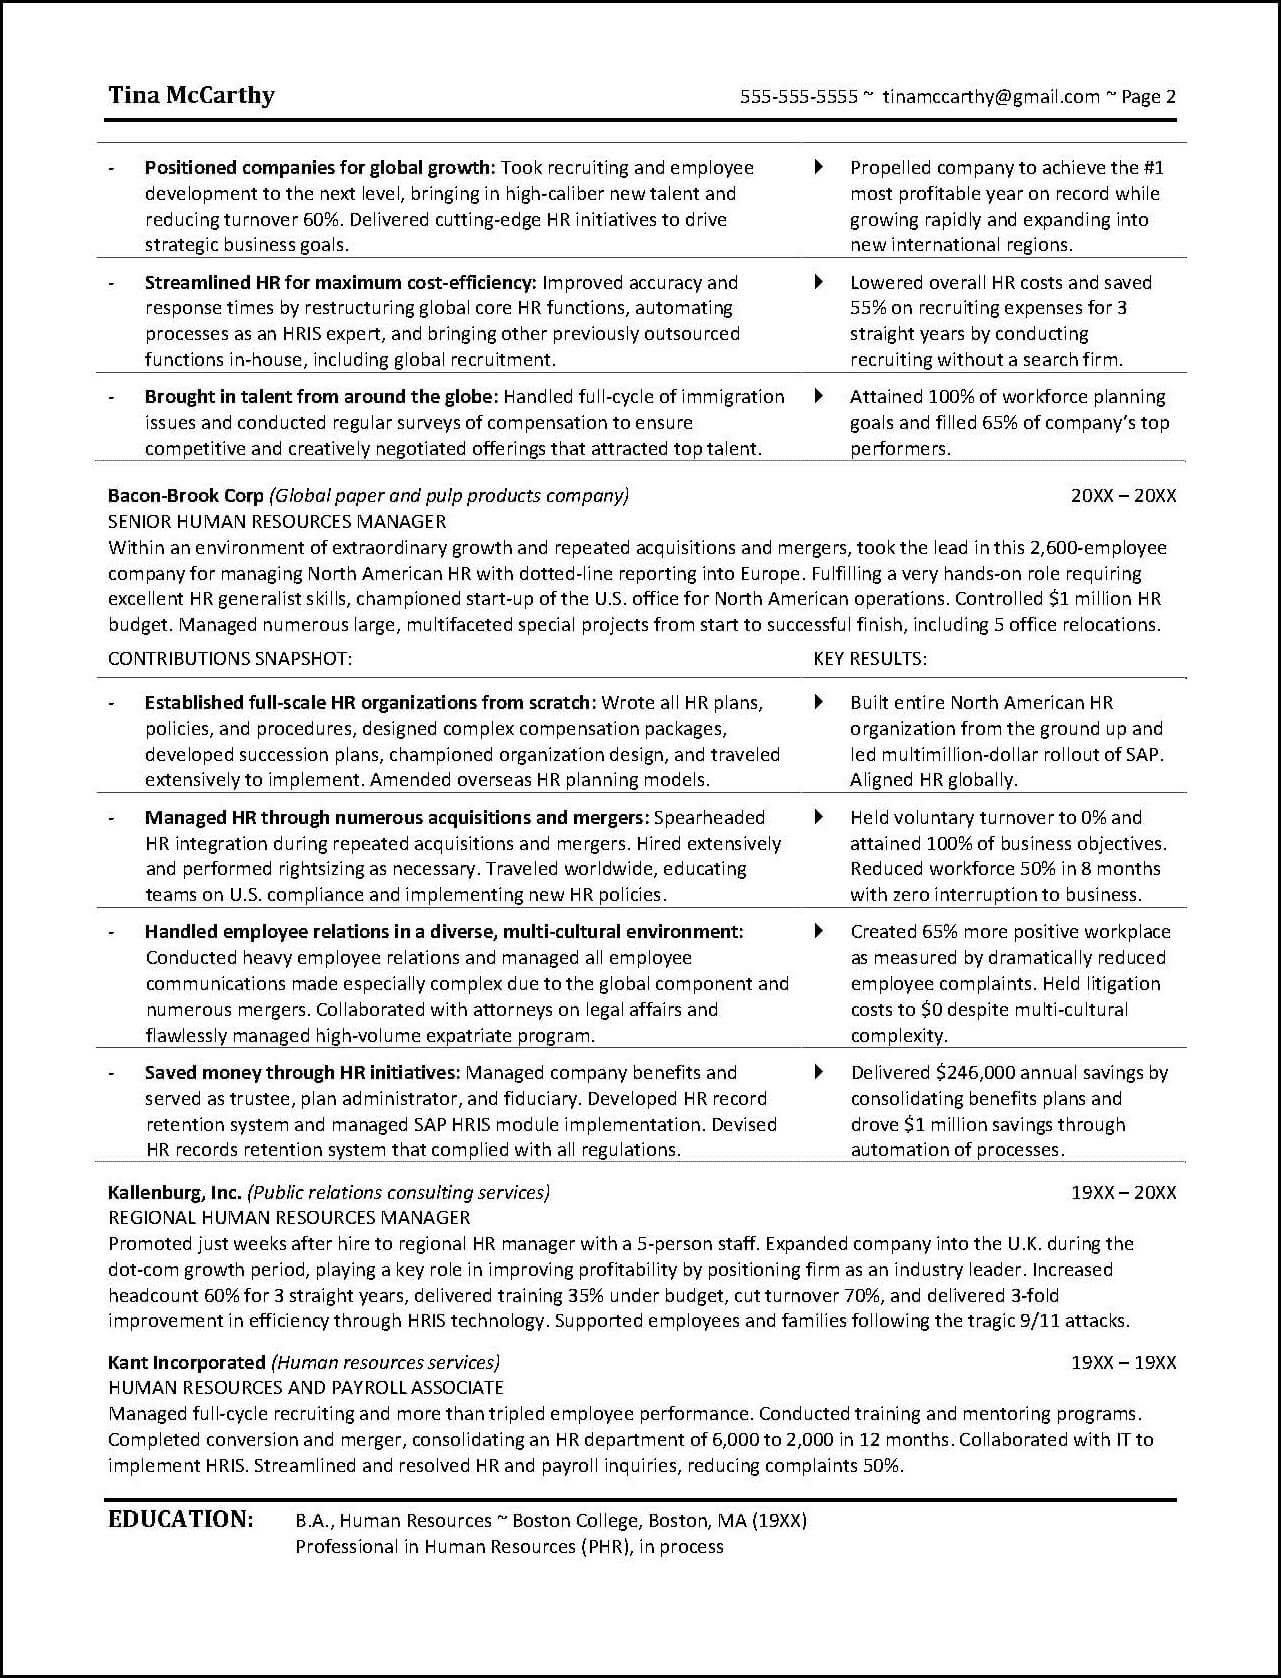 Resume for human resources